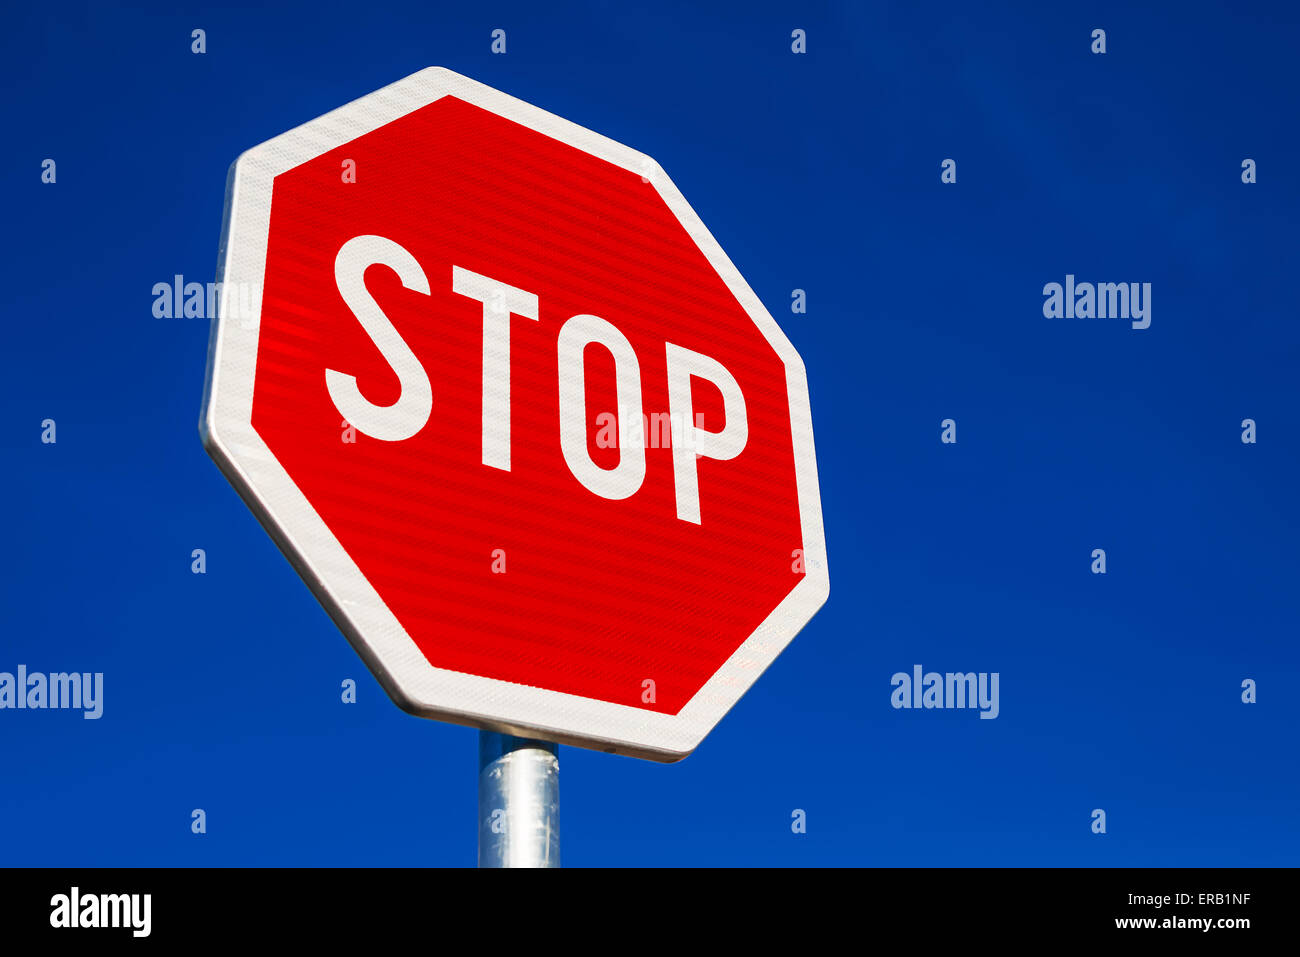 Stop Sign as Traffic Signalization over Blue Daylight Sky - Stock Image